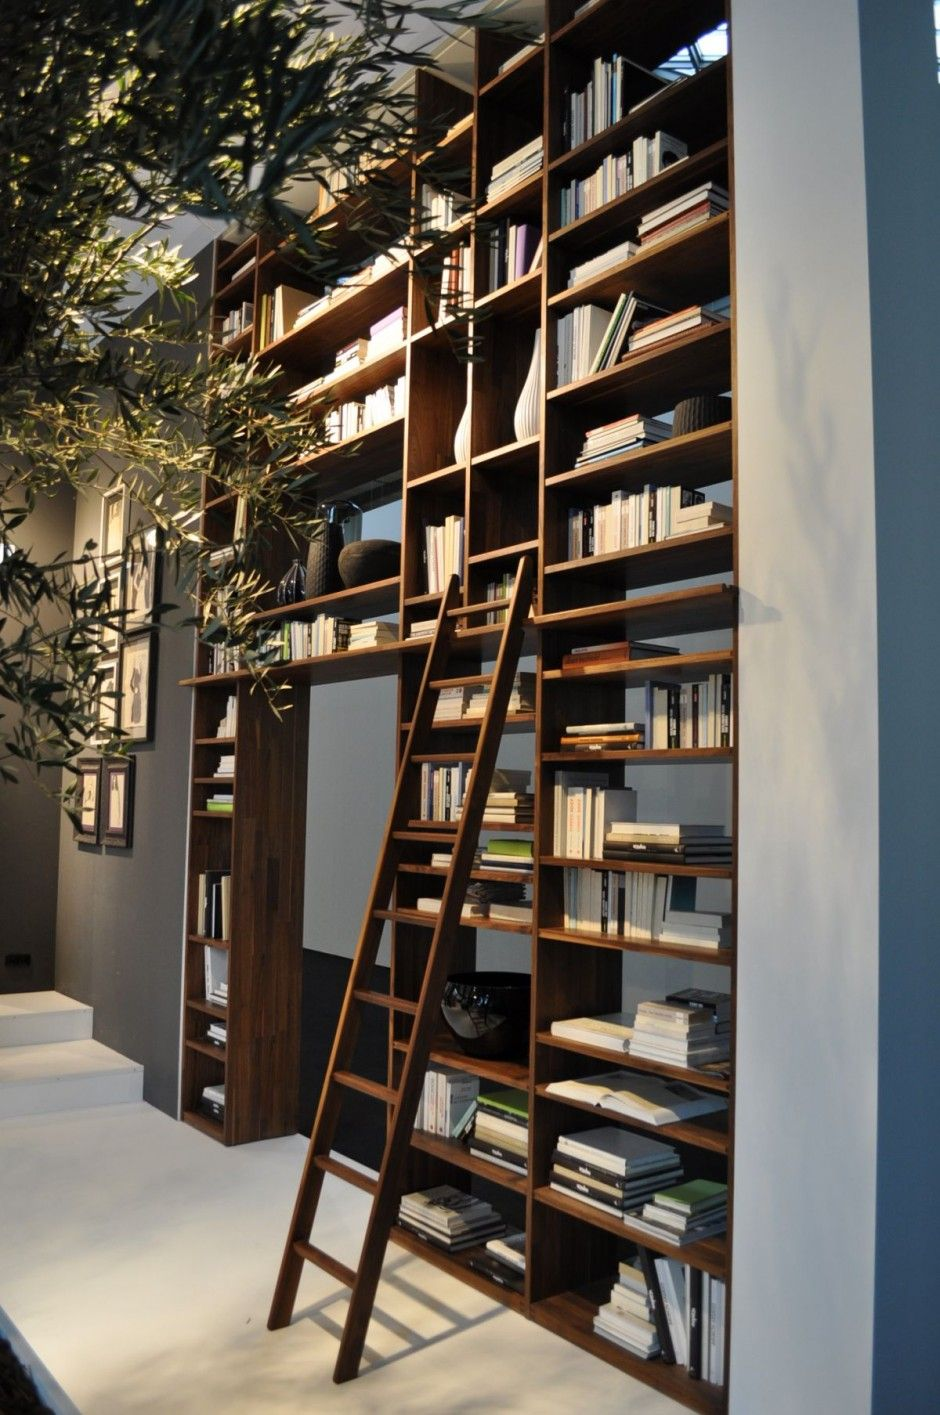 Bücherregal // Bookshelf | Regale | Pinterest | Bücherregale ...